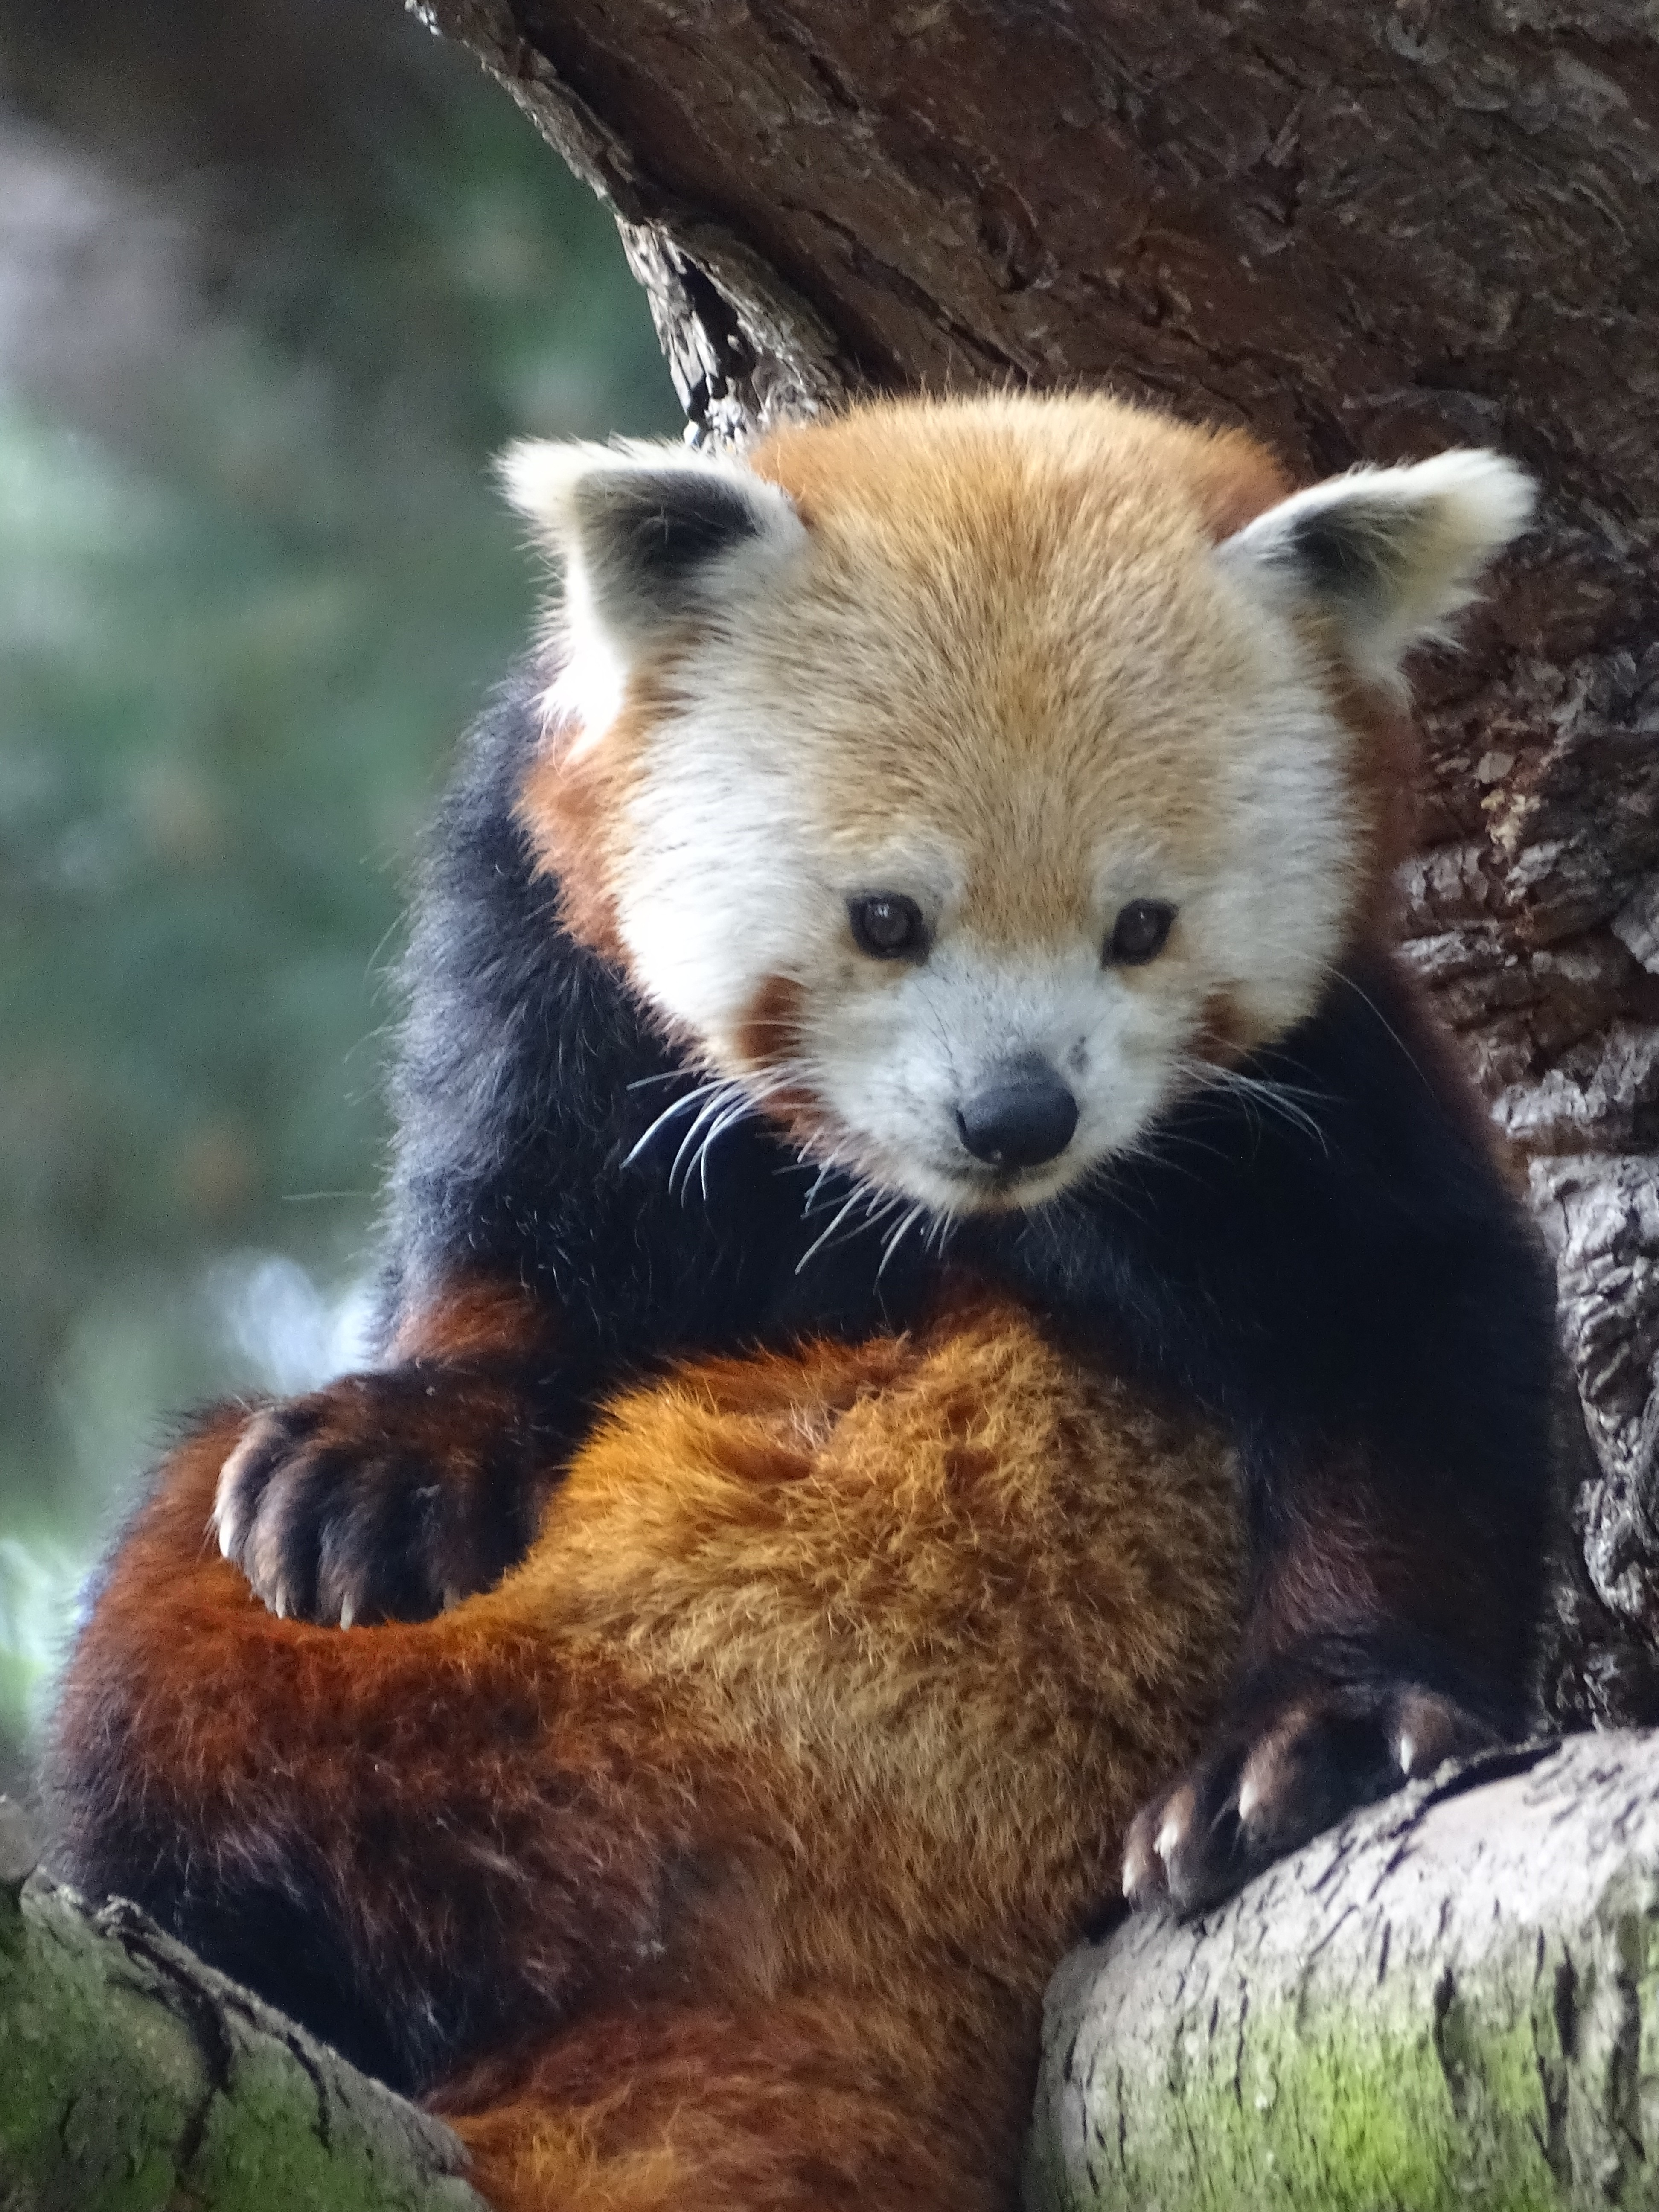 Red panda sitting on a tree